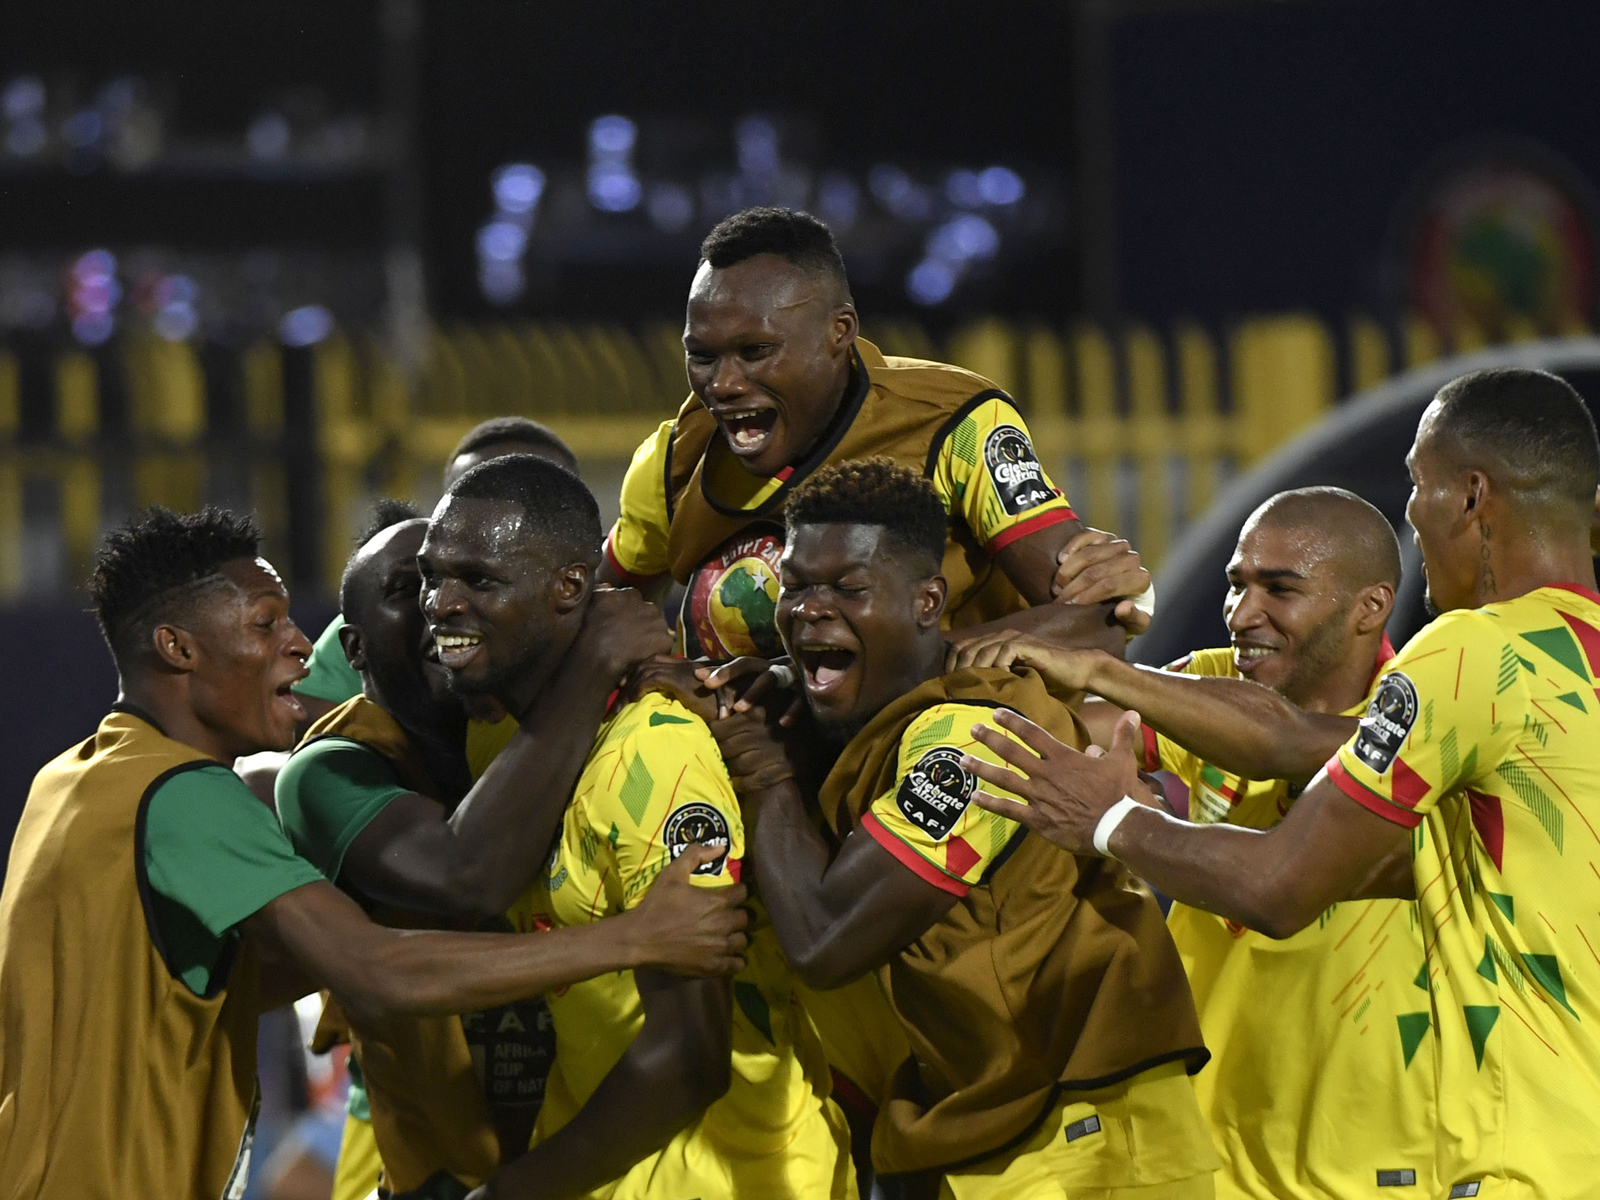 Benin was one of the surprises of the Africa Cup of Nations